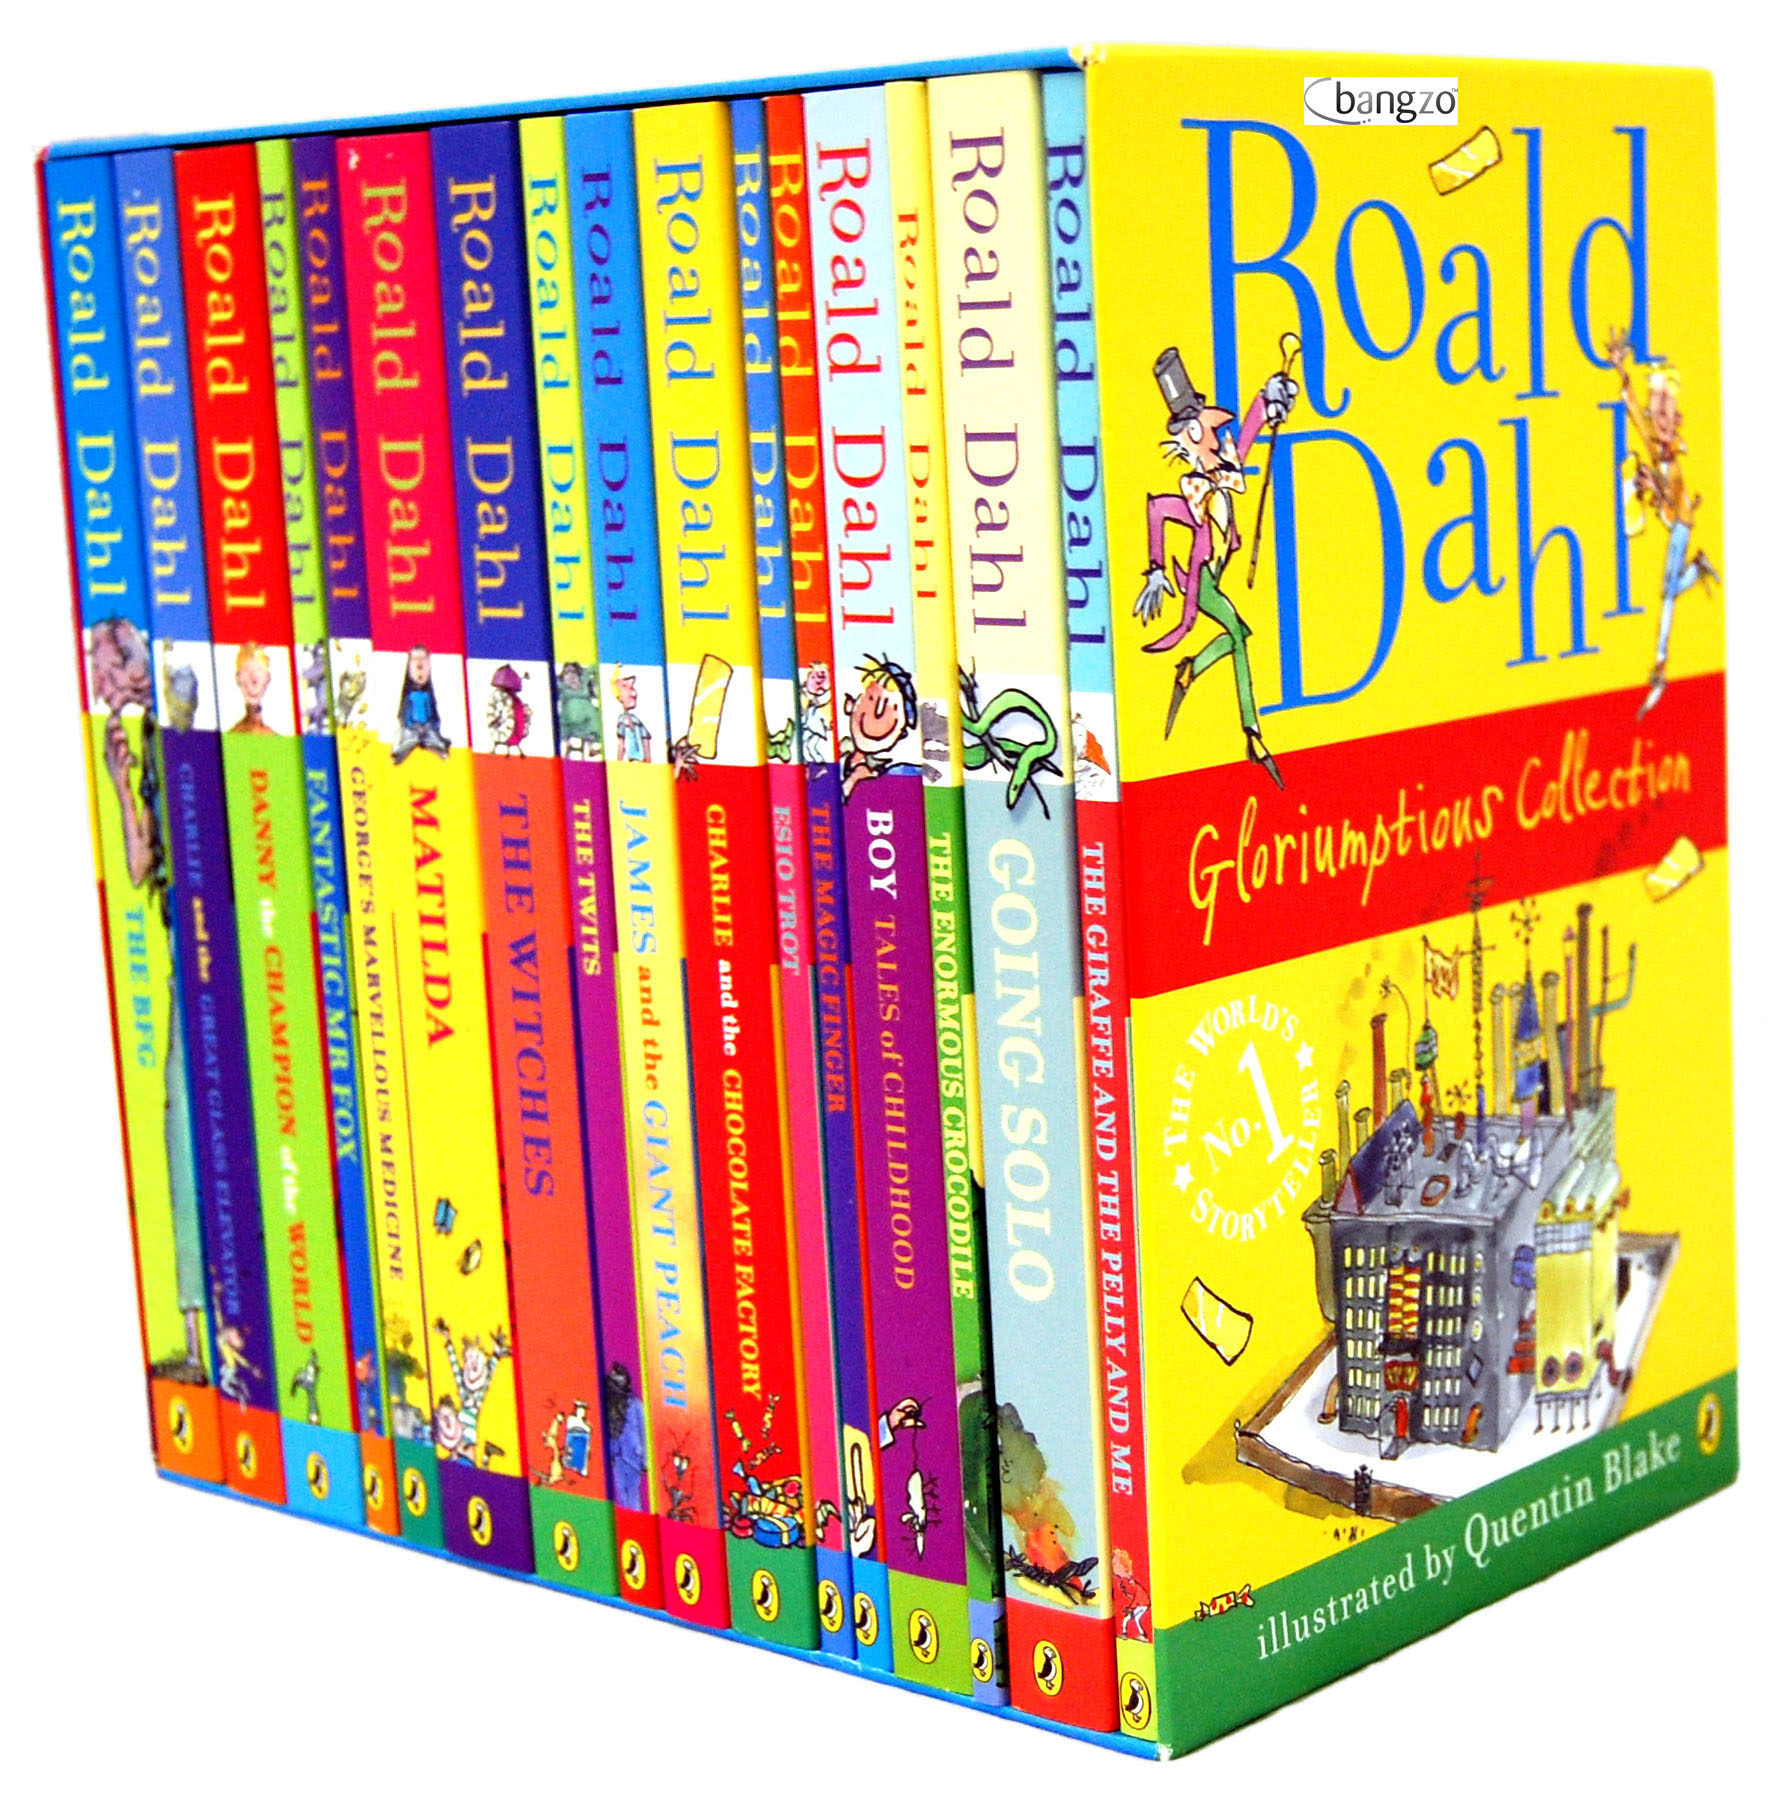 books dahl roald series children christmas childrens collection gifts box perfect kid bfg matilda literature gloriumptious famous author onehundreddollarsamonth gift